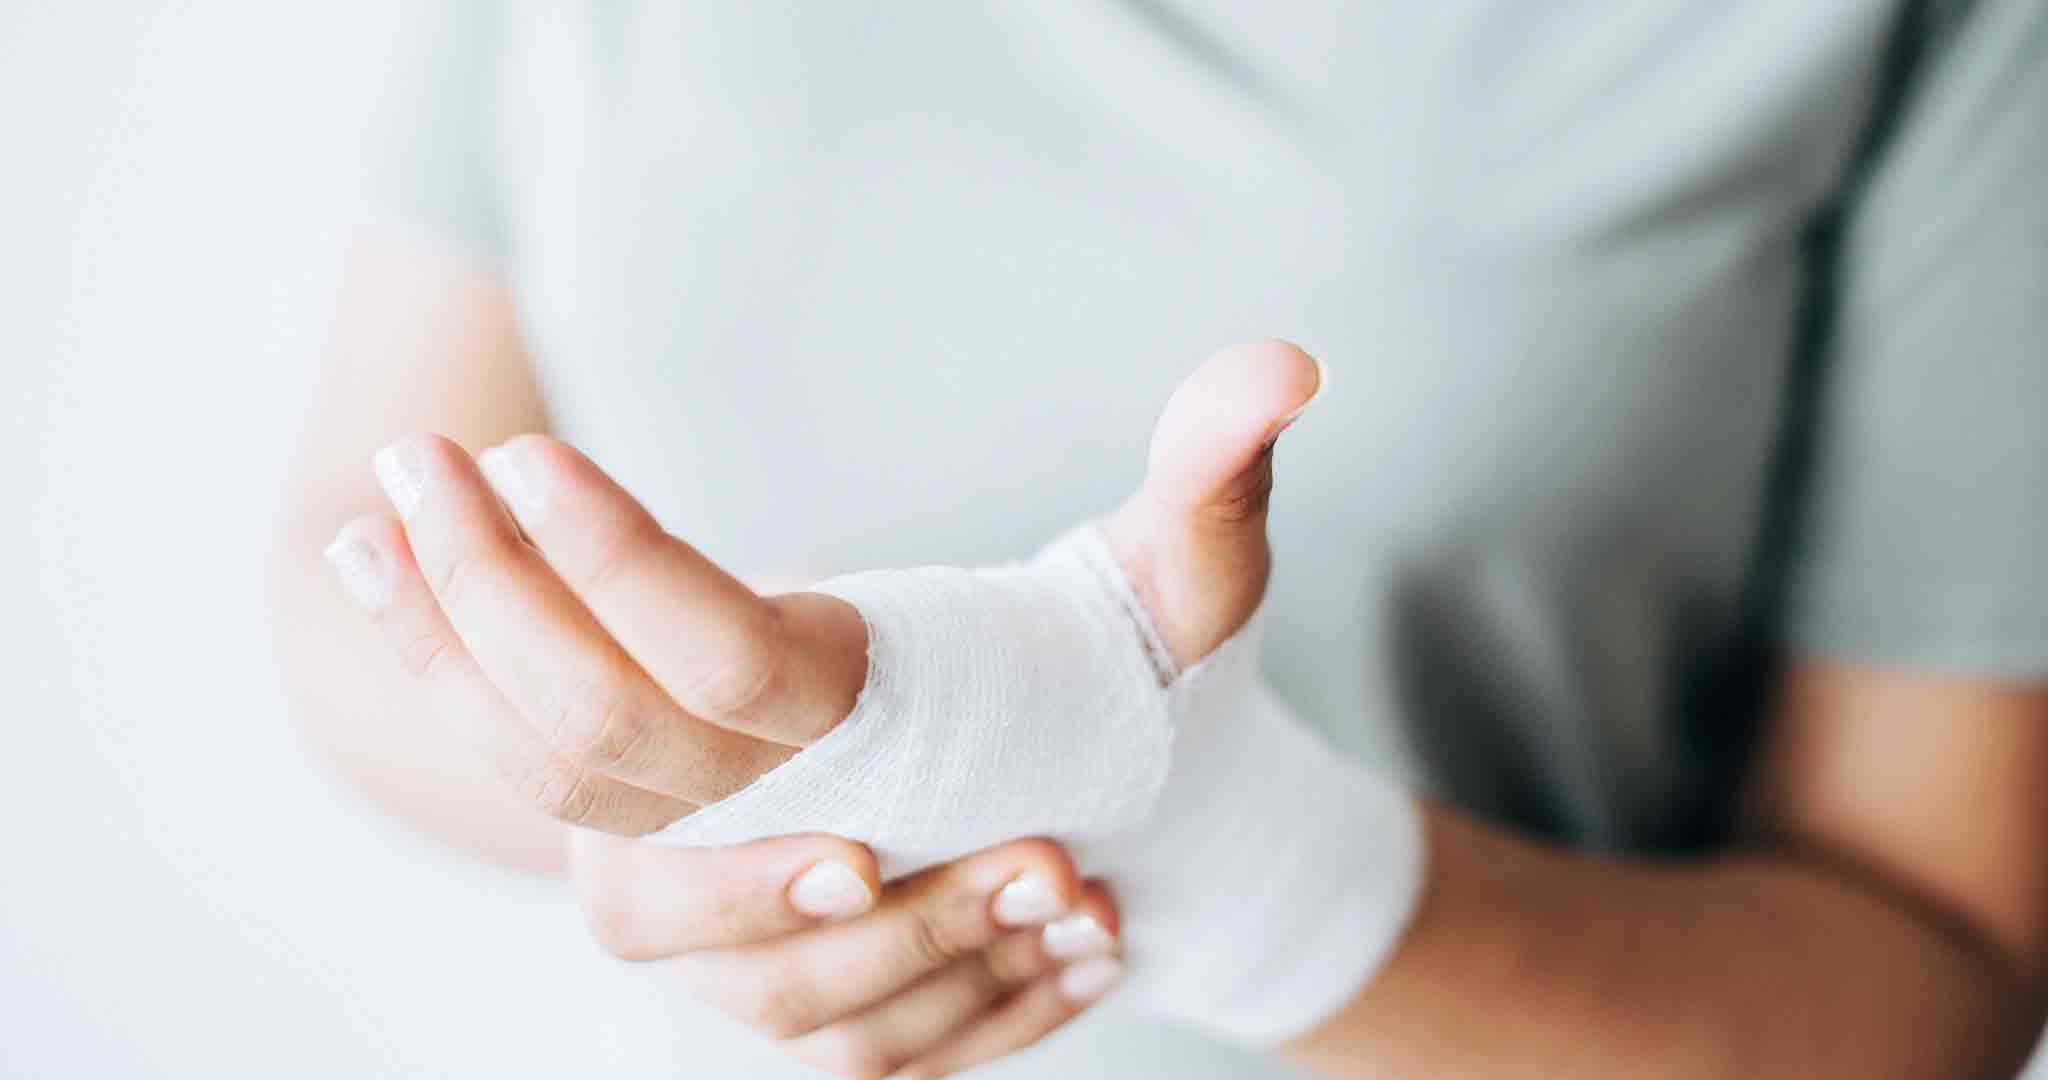 bandage close up hands doctor stock photos